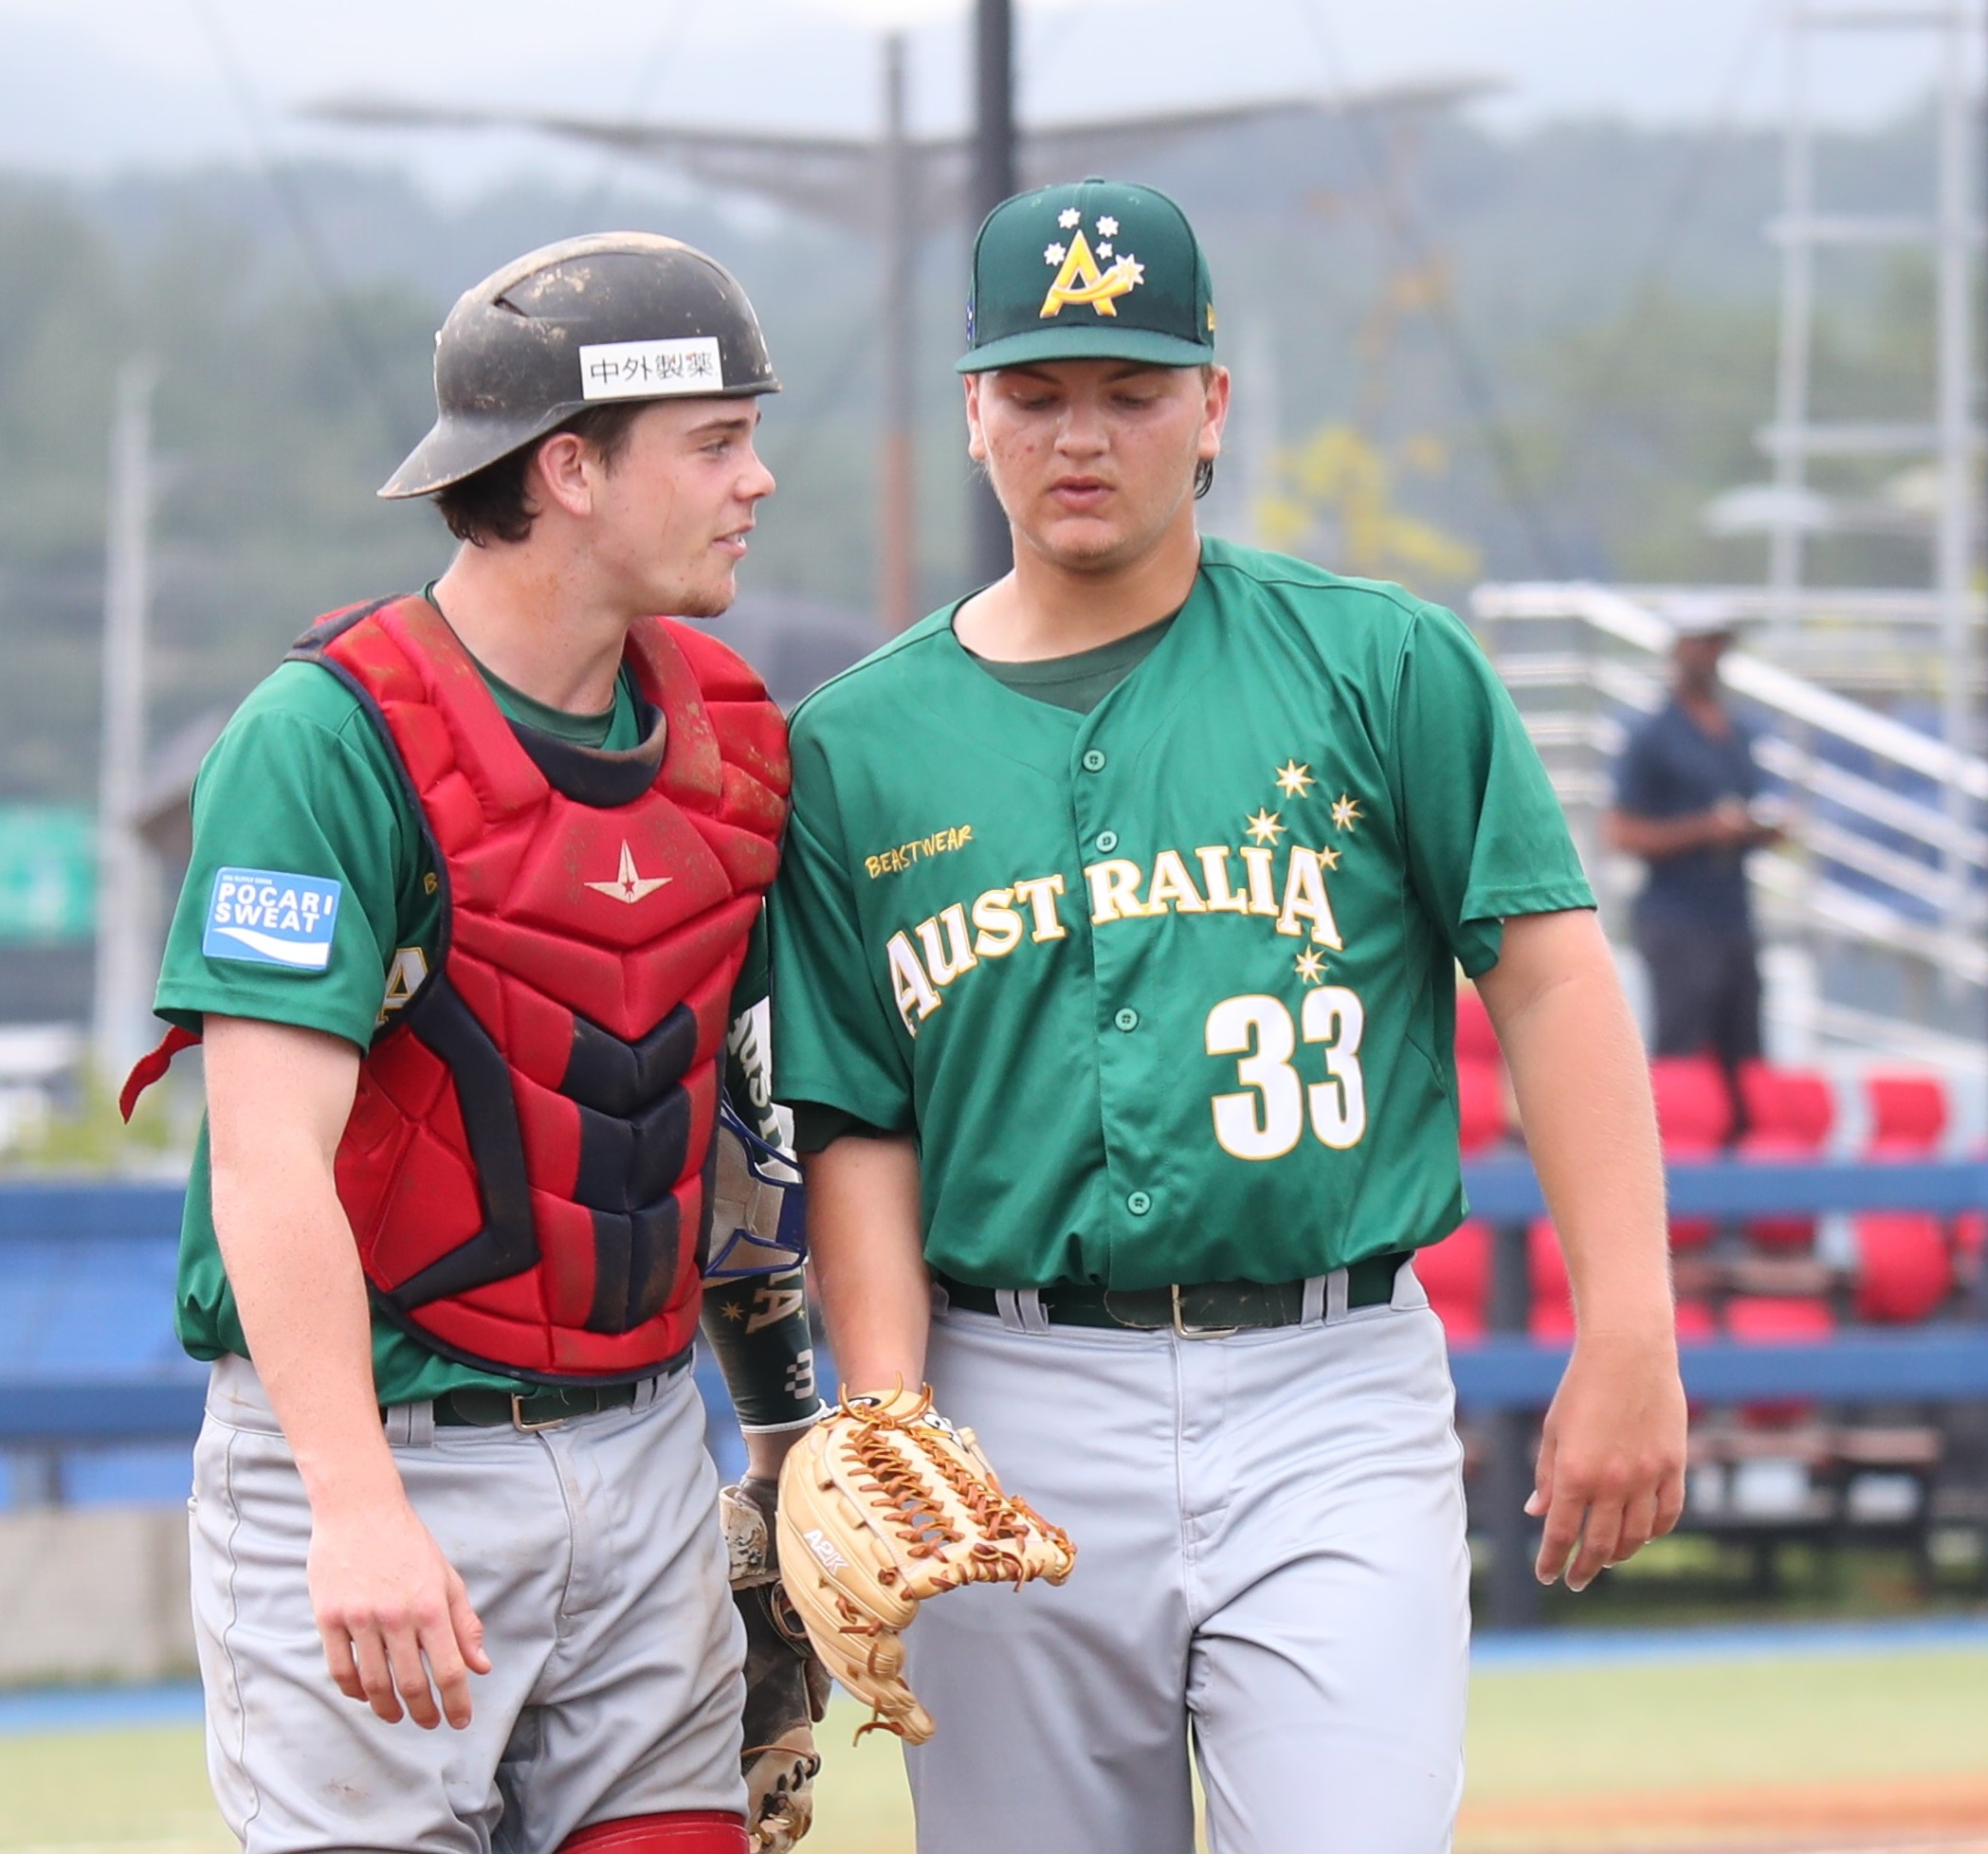 Catcher Christopher Burke talks to starting pitcher Sherriff